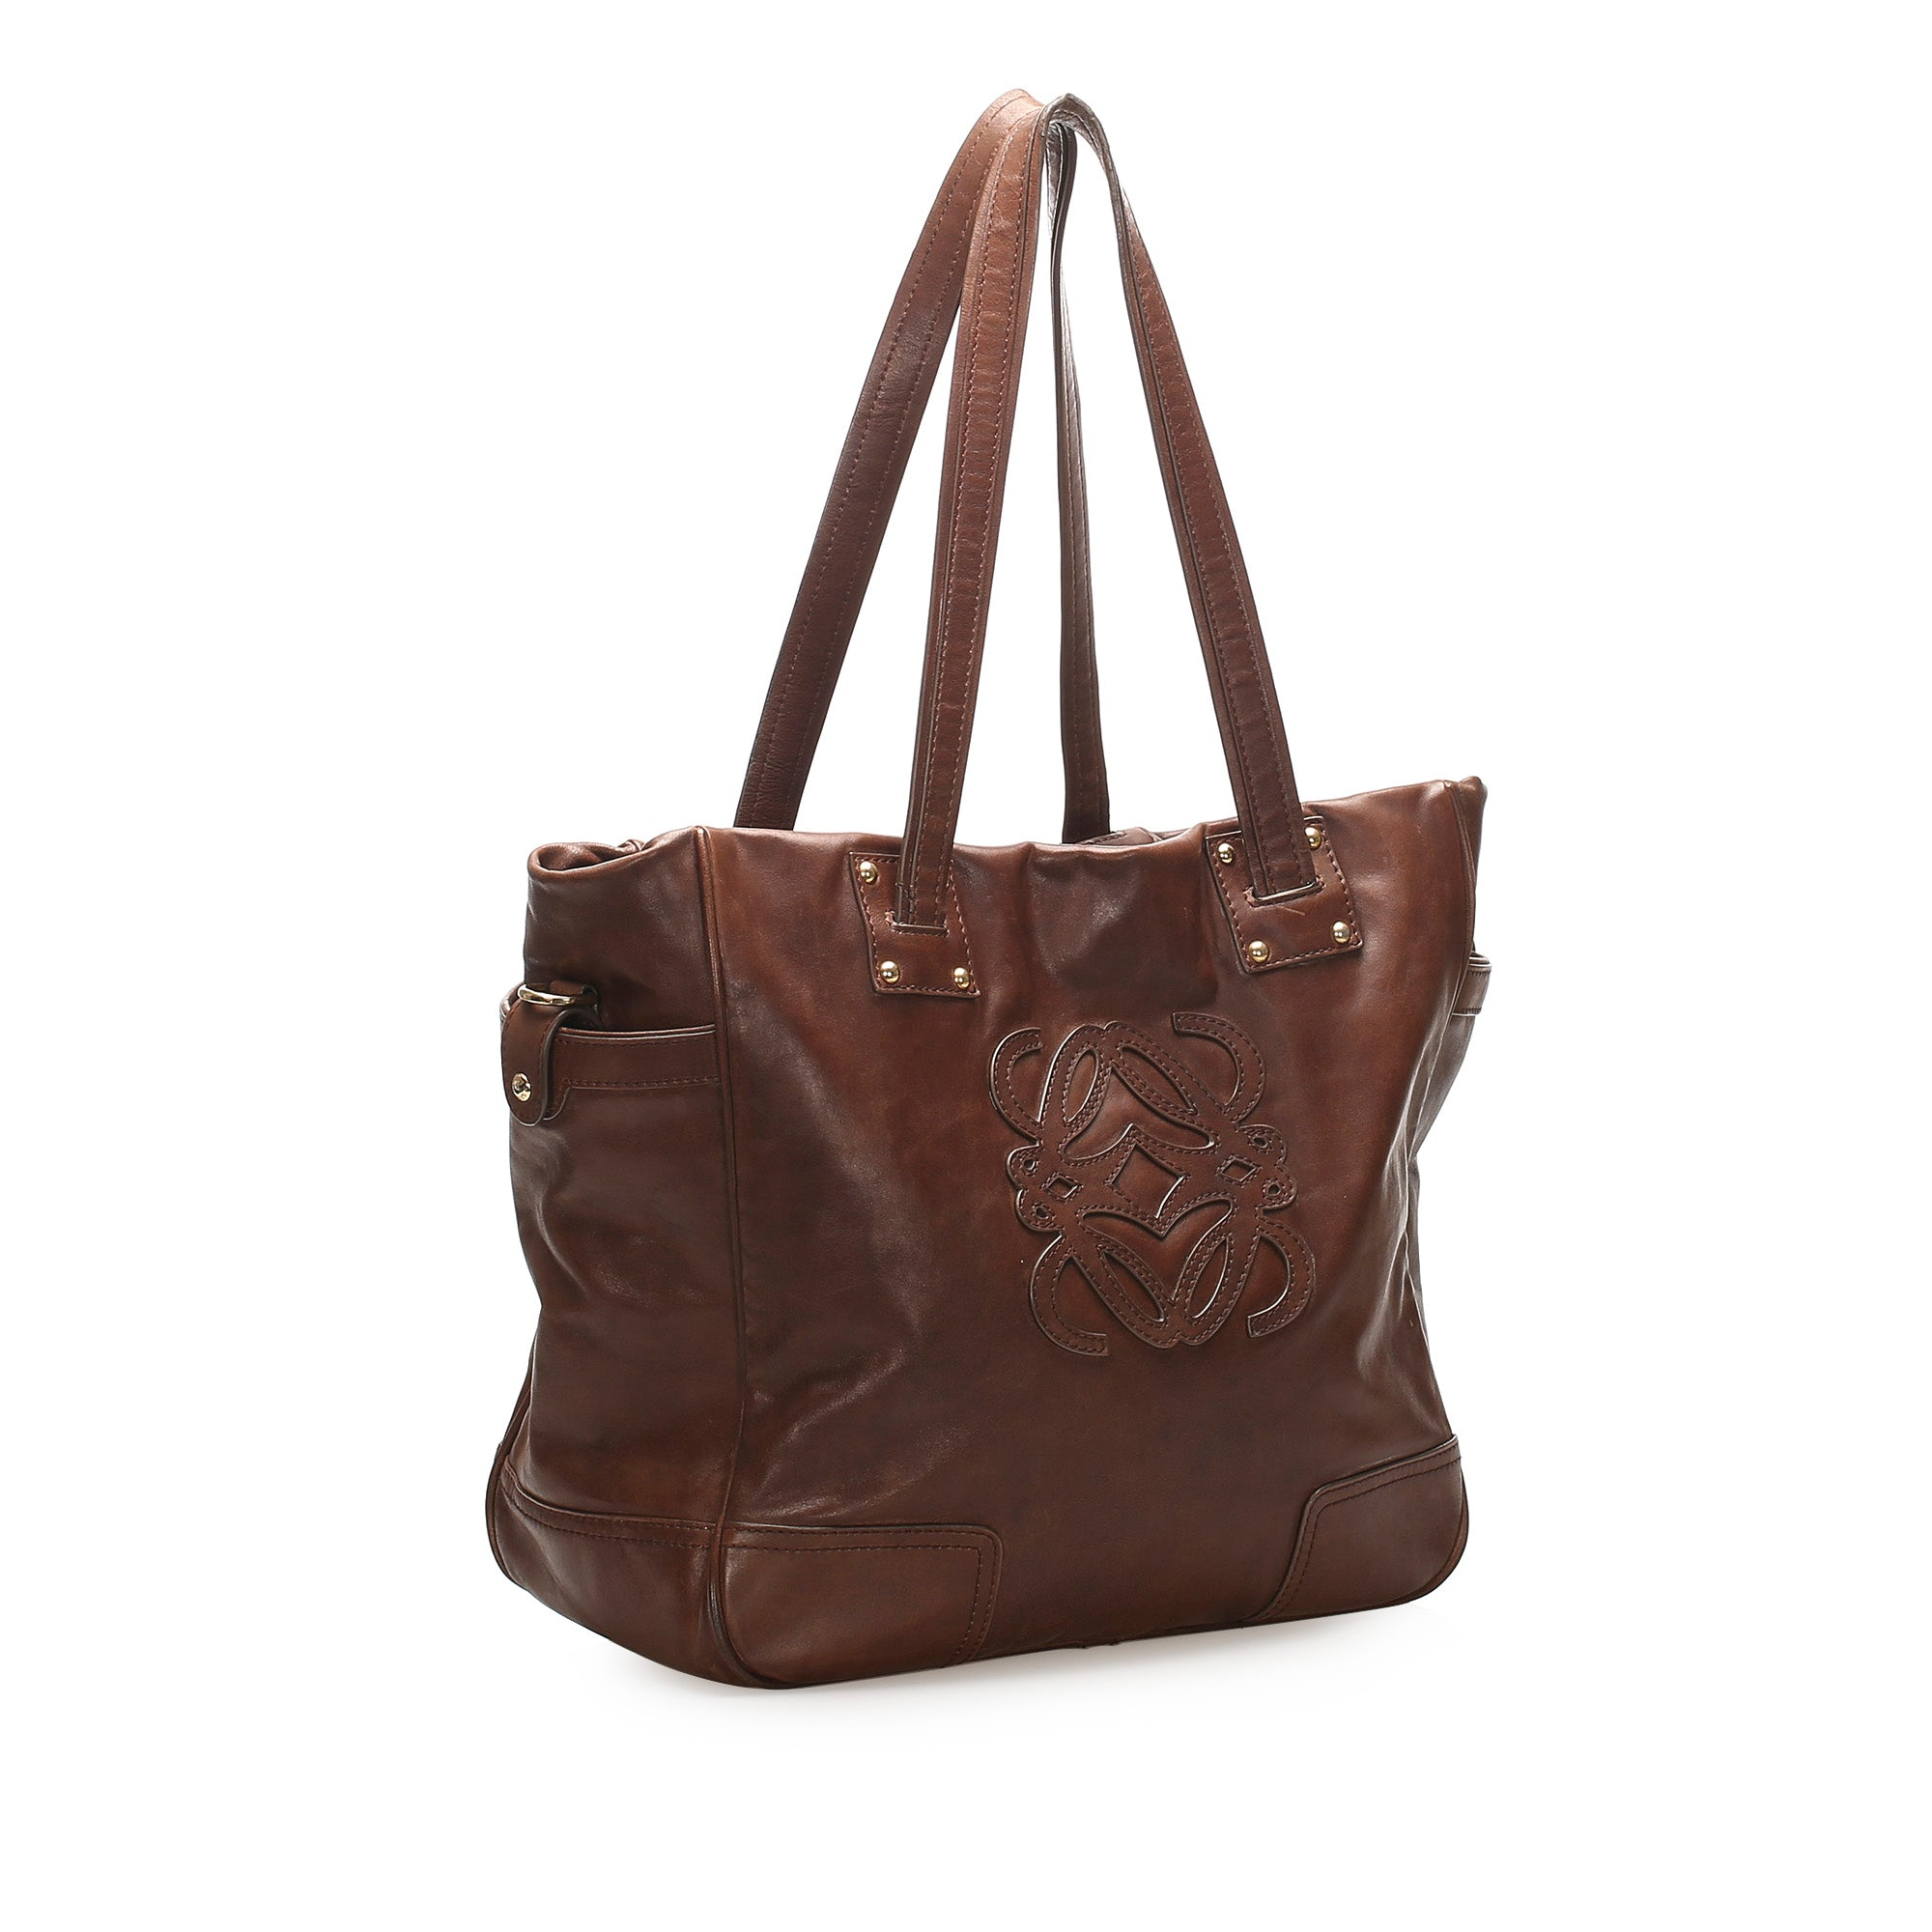 Loewe Brown Anagram Leather Tote Bag